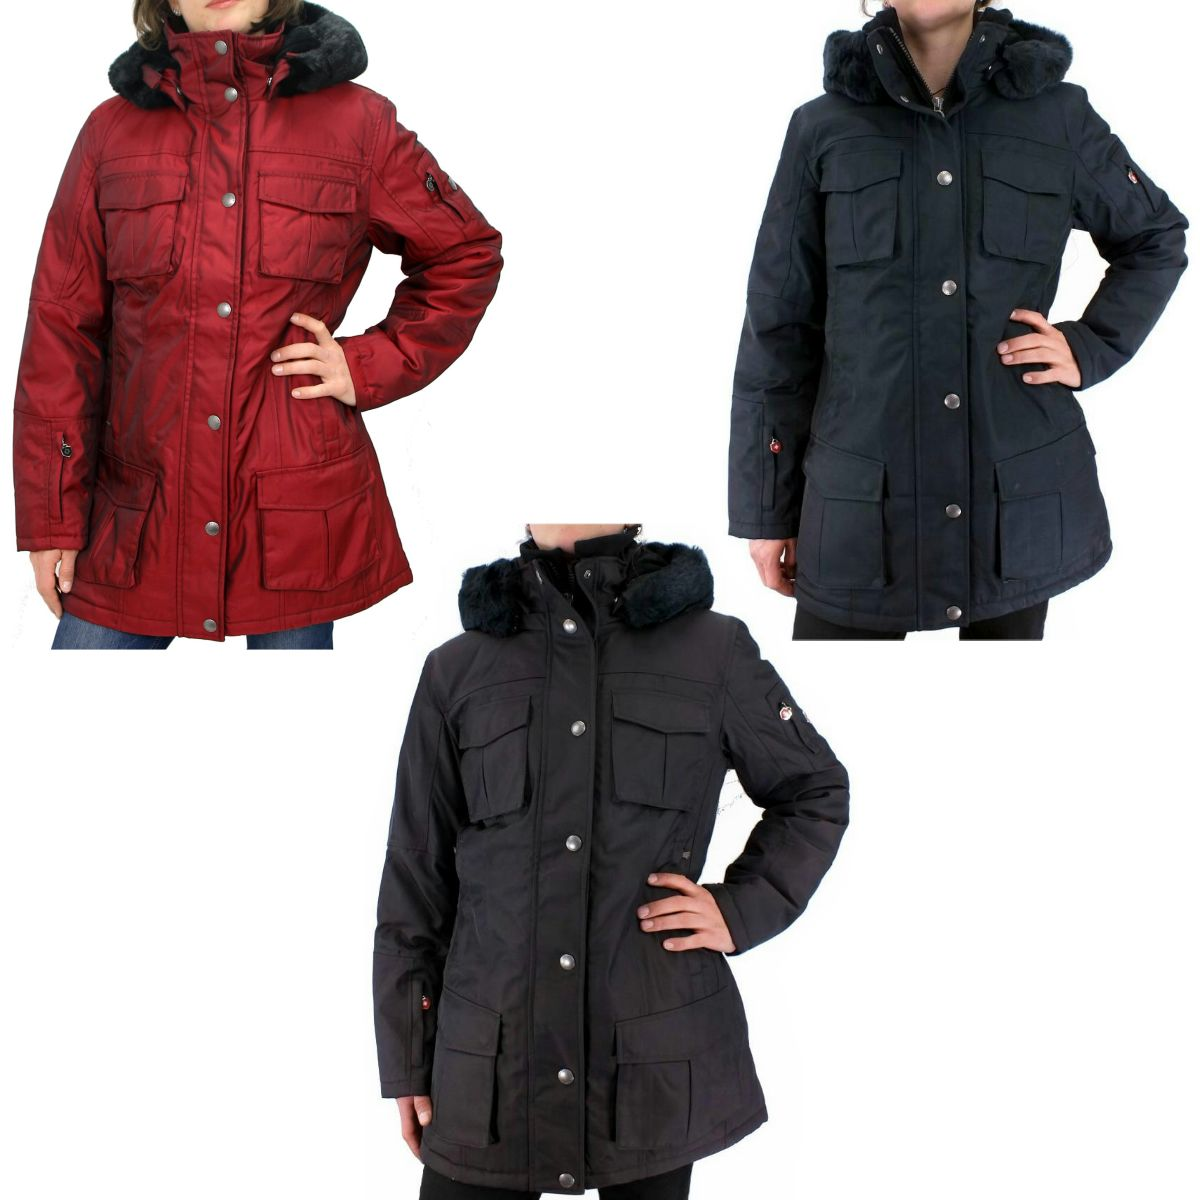 wellensteyn schneezauber damen winterjacke parka jacke. Black Bedroom Furniture Sets. Home Design Ideas